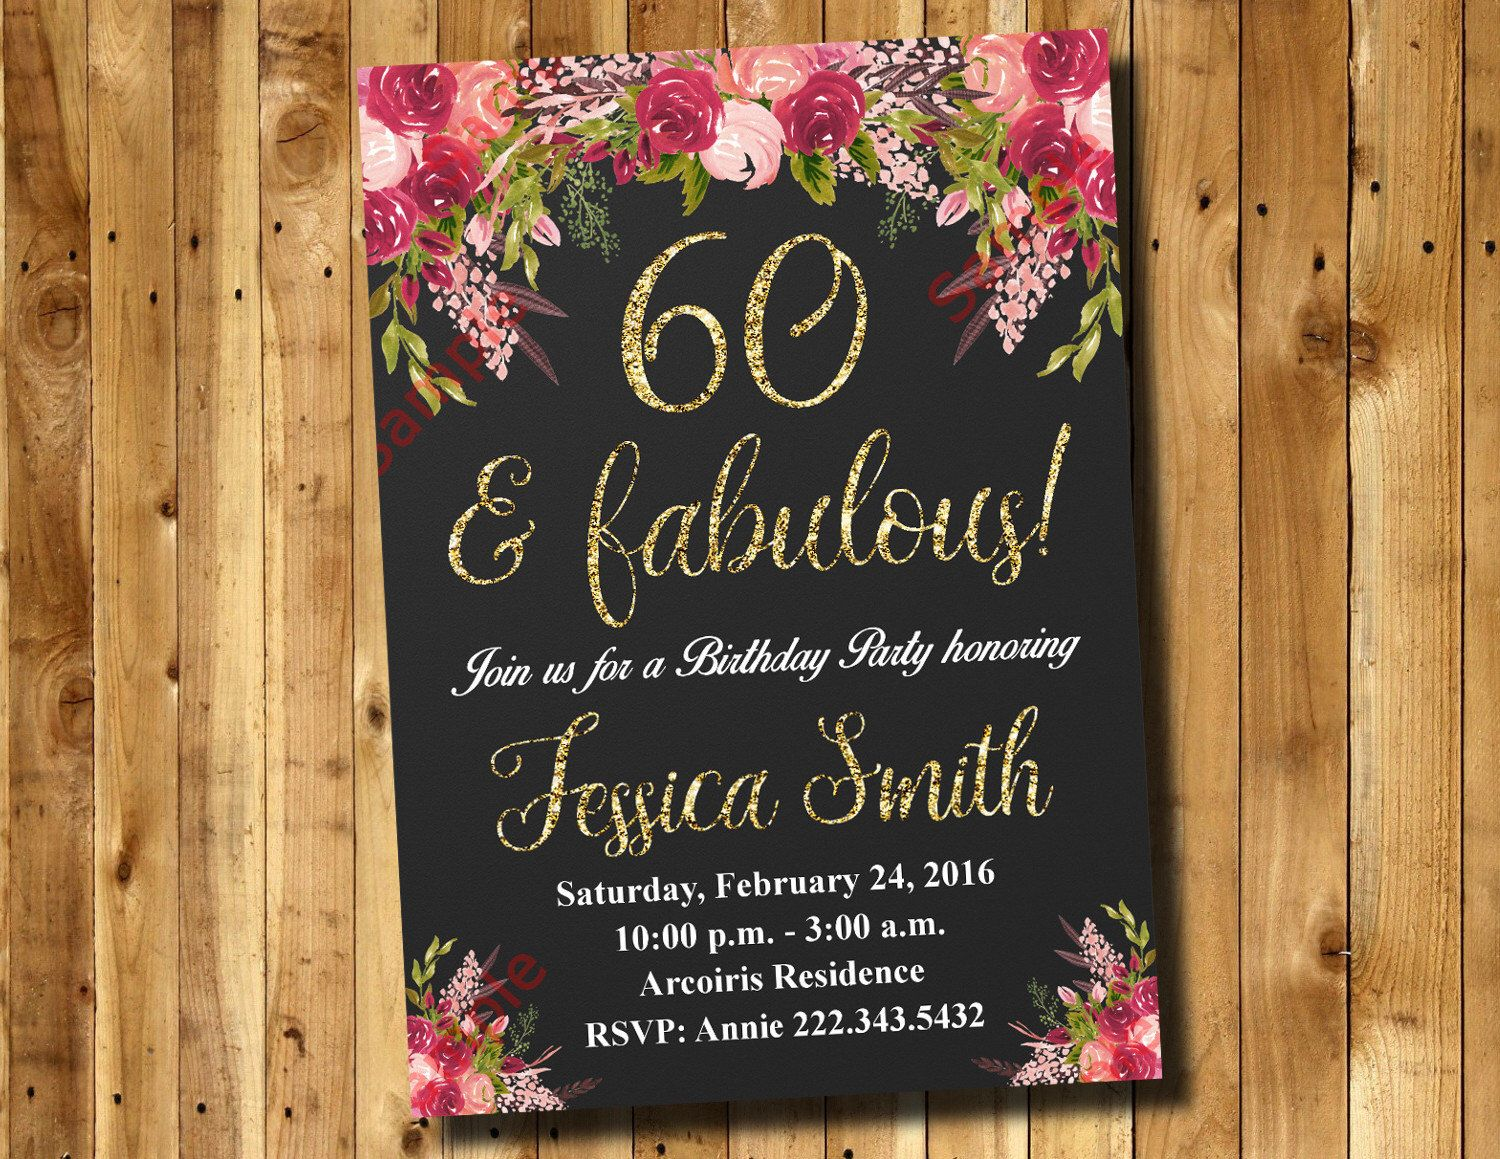 60th Birthday Invitation - Watercolor Flowers Invitation - Floral ...